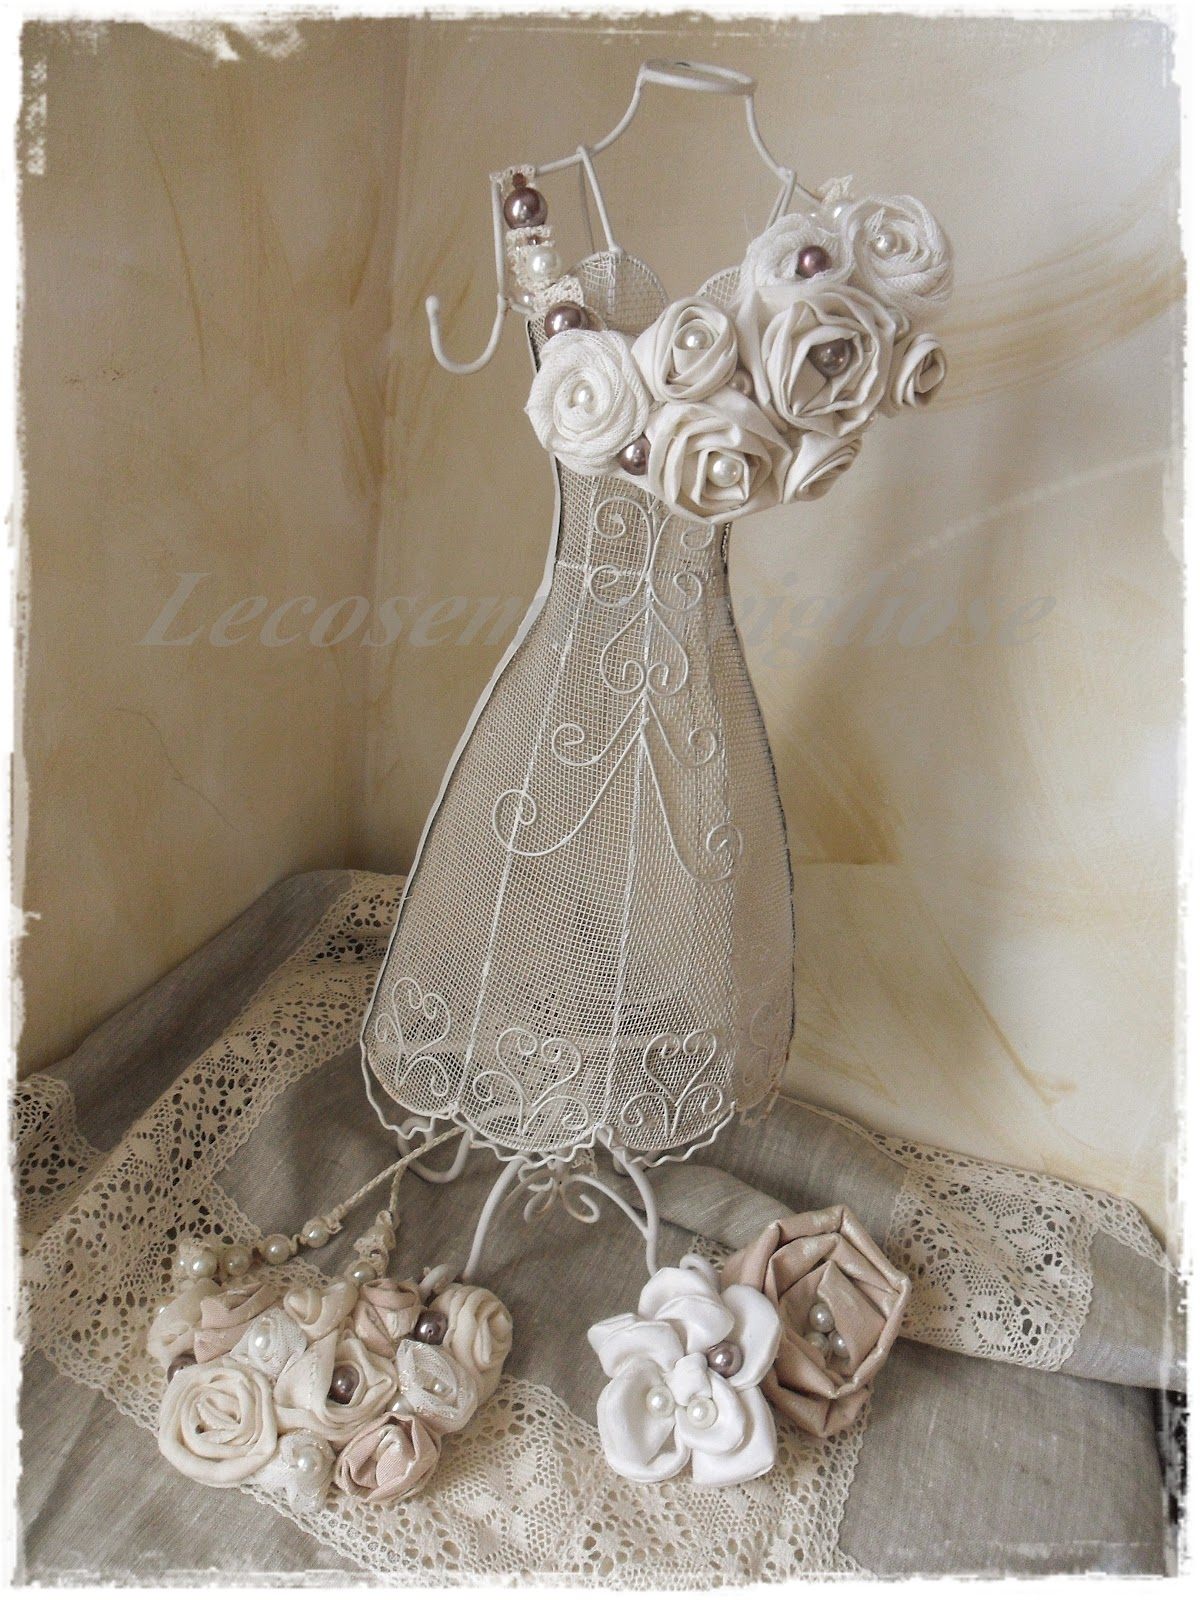 ... Shabby e country chic passions: collane e spille shabby chic